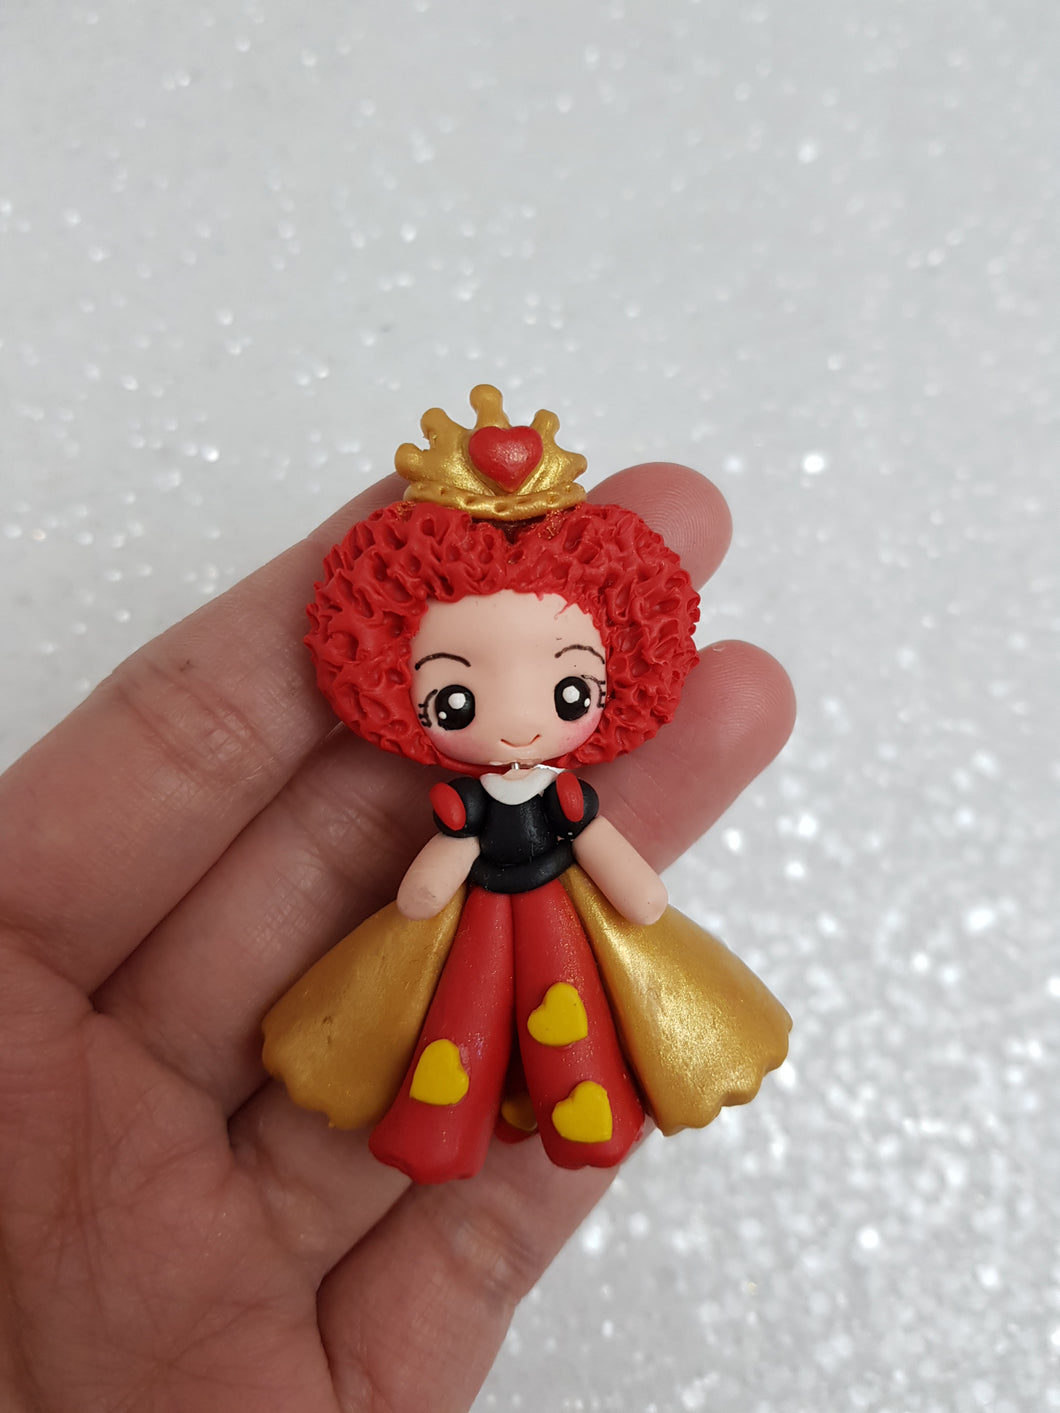 Clay Charm Embellishment - NEW QUEEN OF HEARTS - Crafty Mood